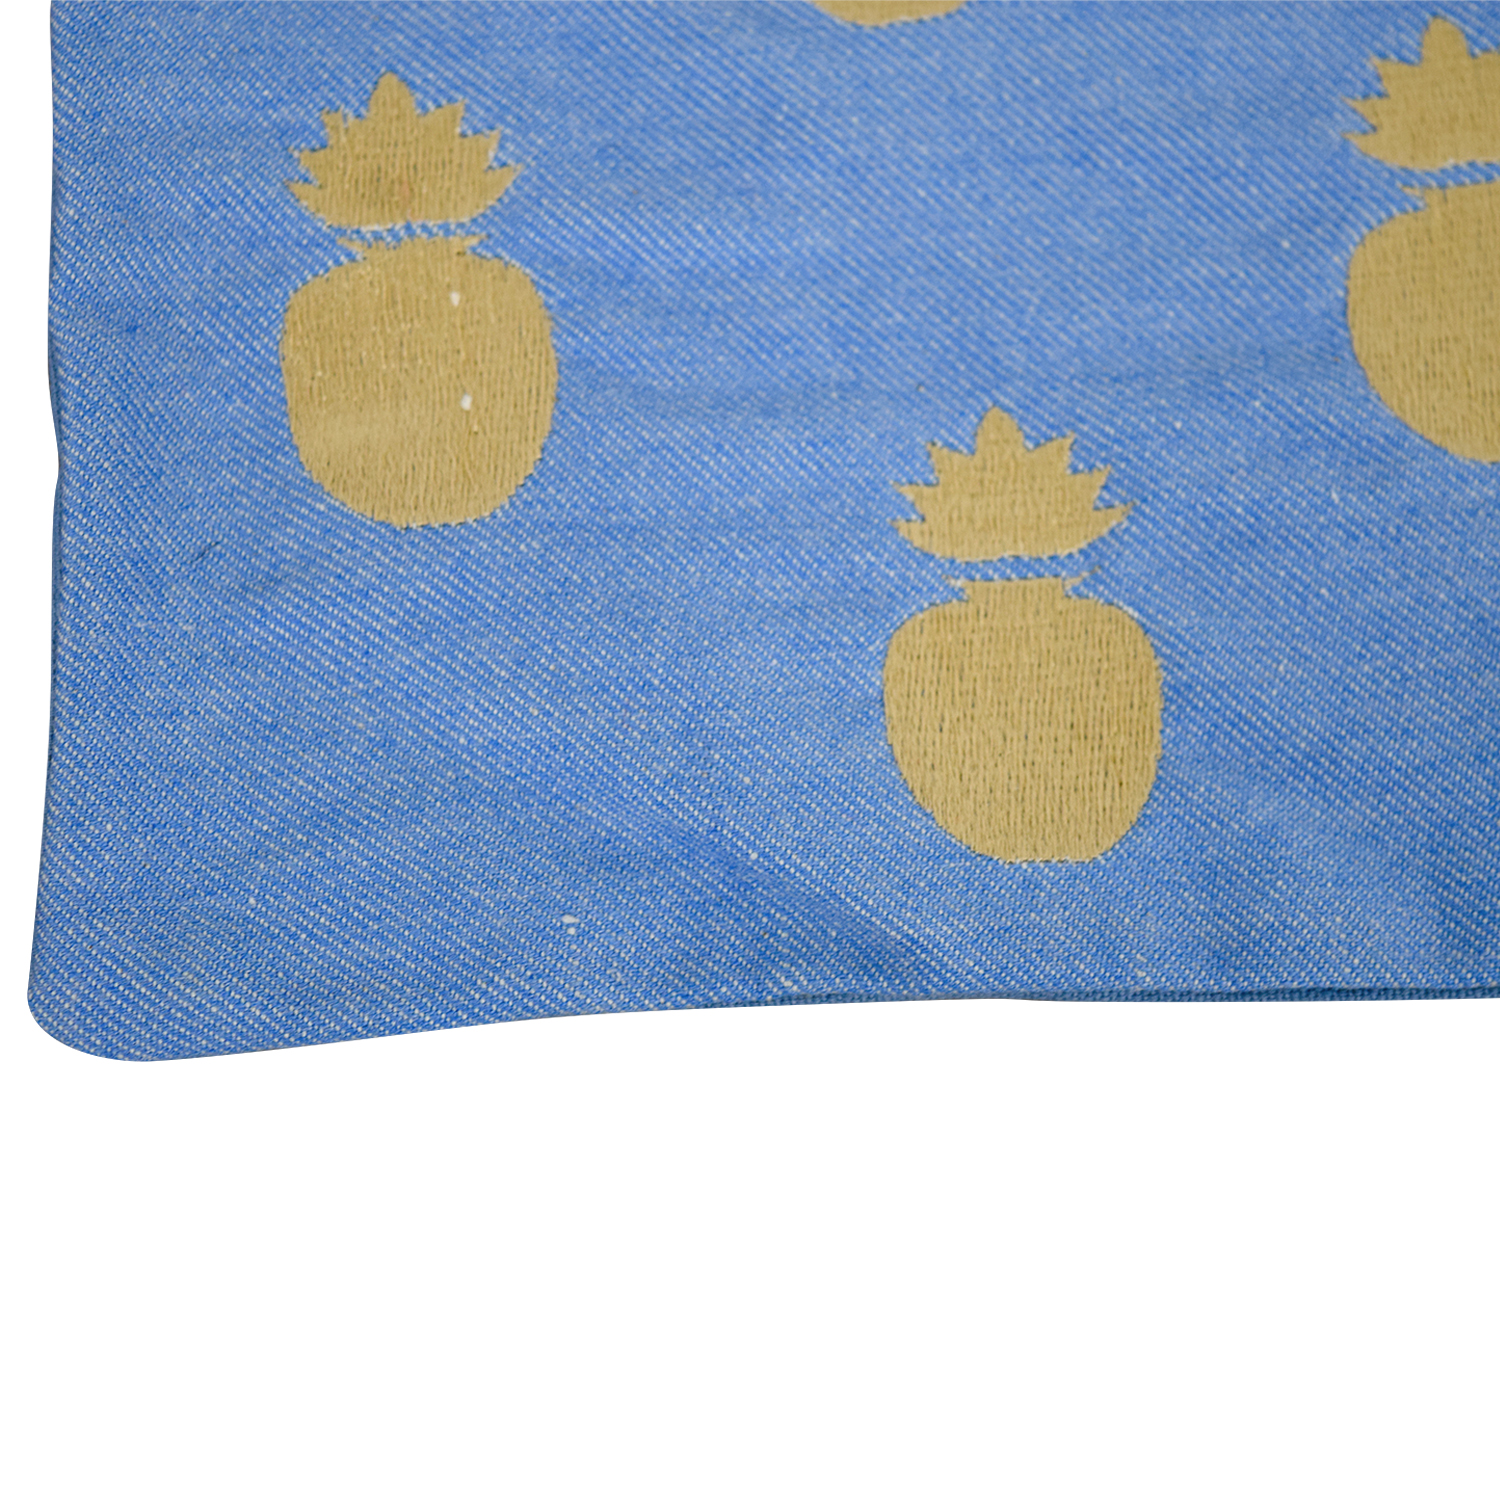 buy Obeetee Pineapple Blue Cushion Cover Obeetee Decorative Accents